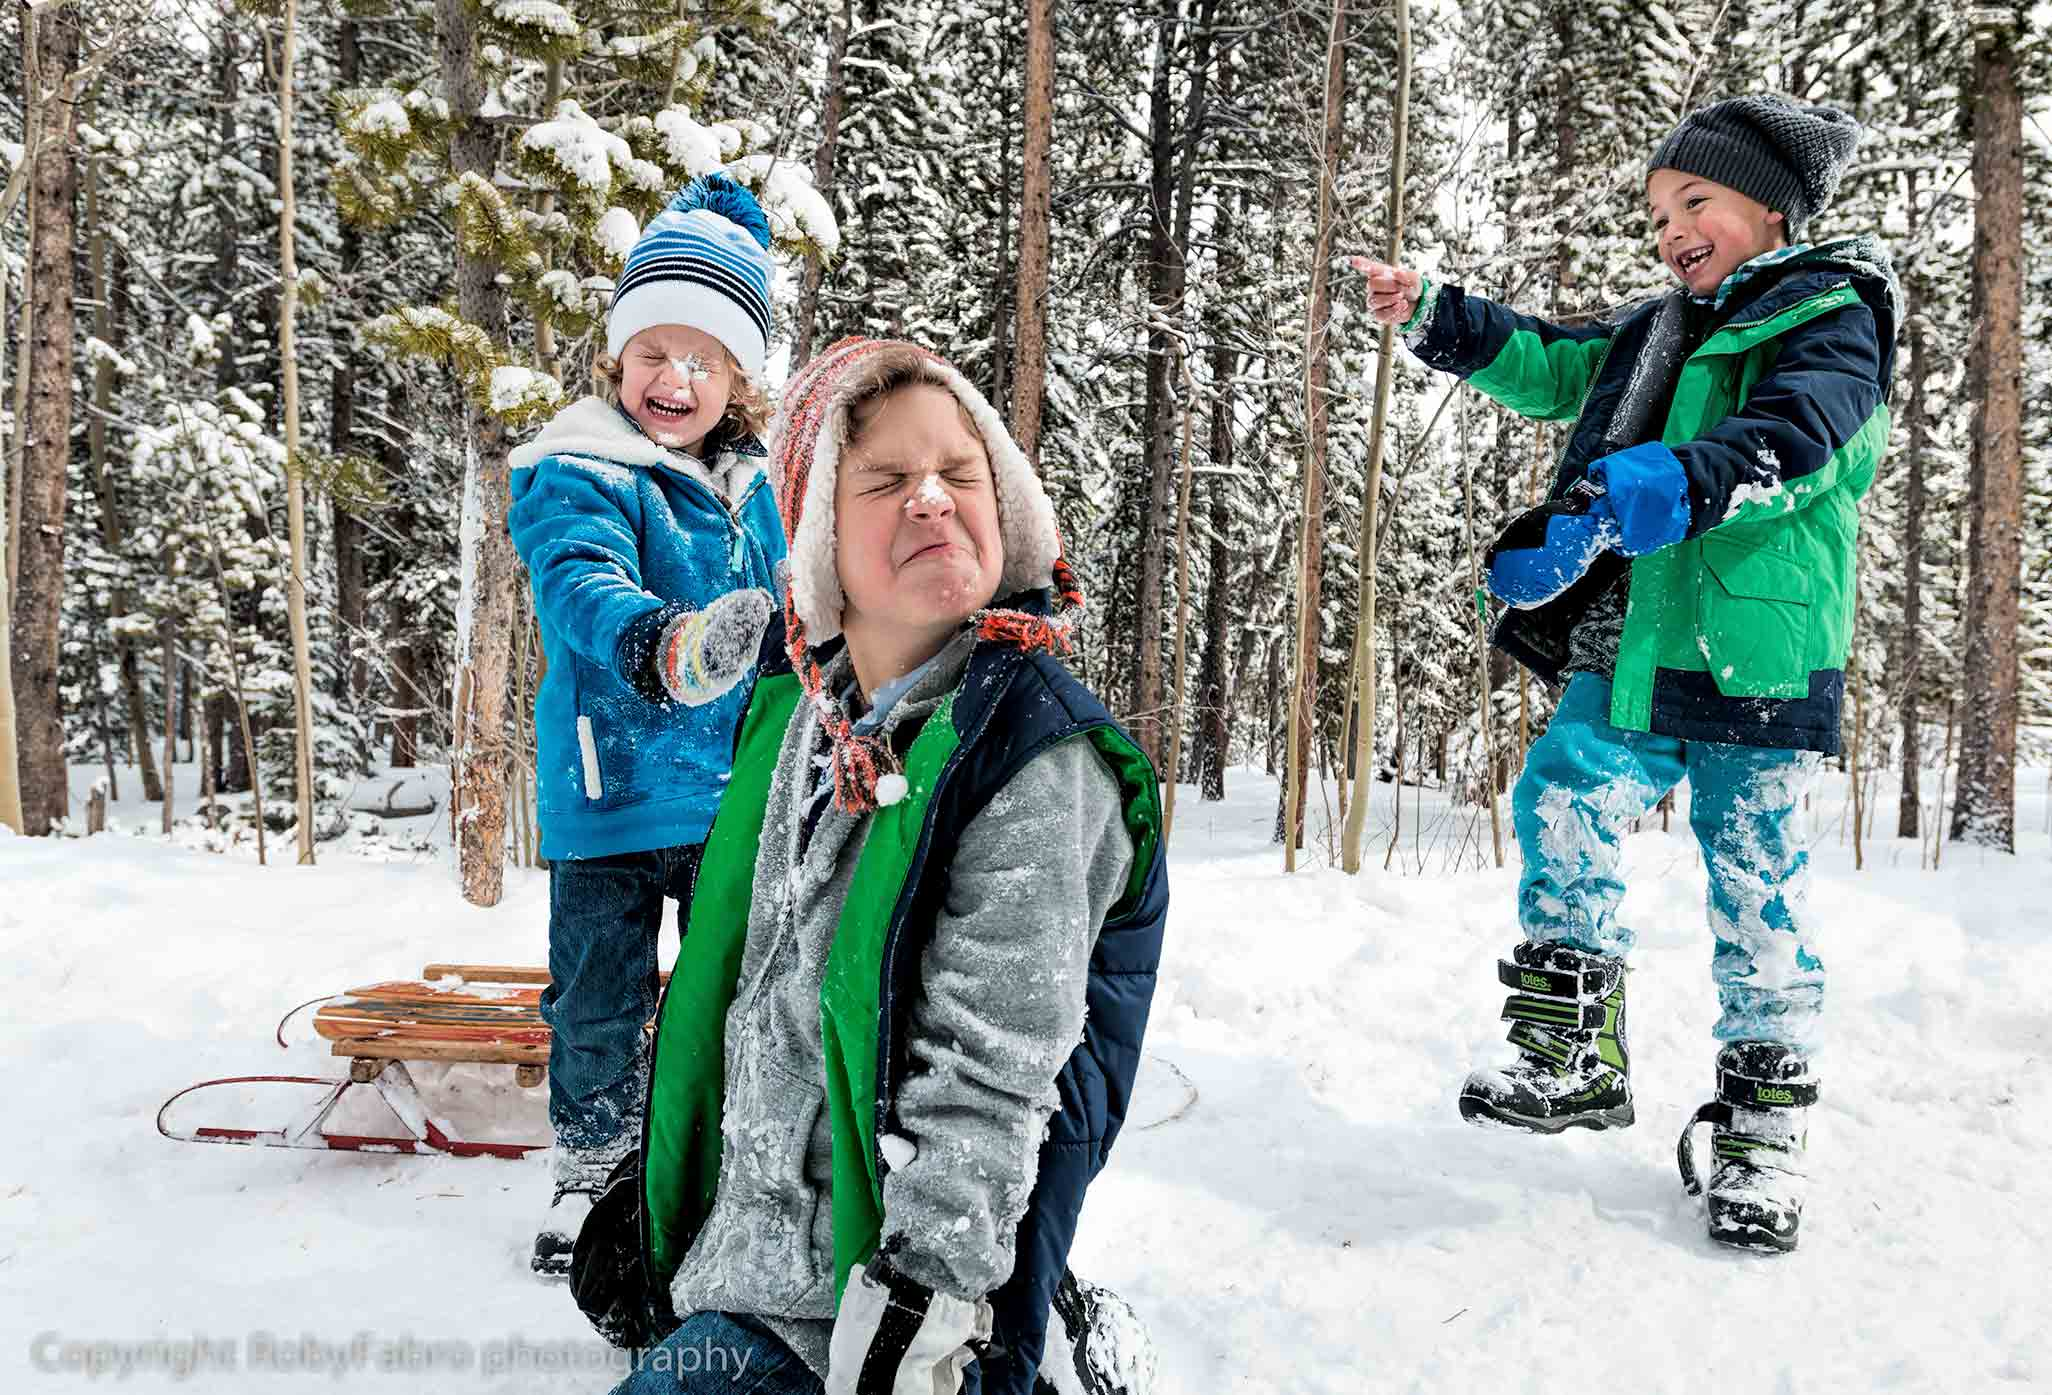 Kids having fun in the snow. Lifestyle photography,  Breckenridge, Colorado